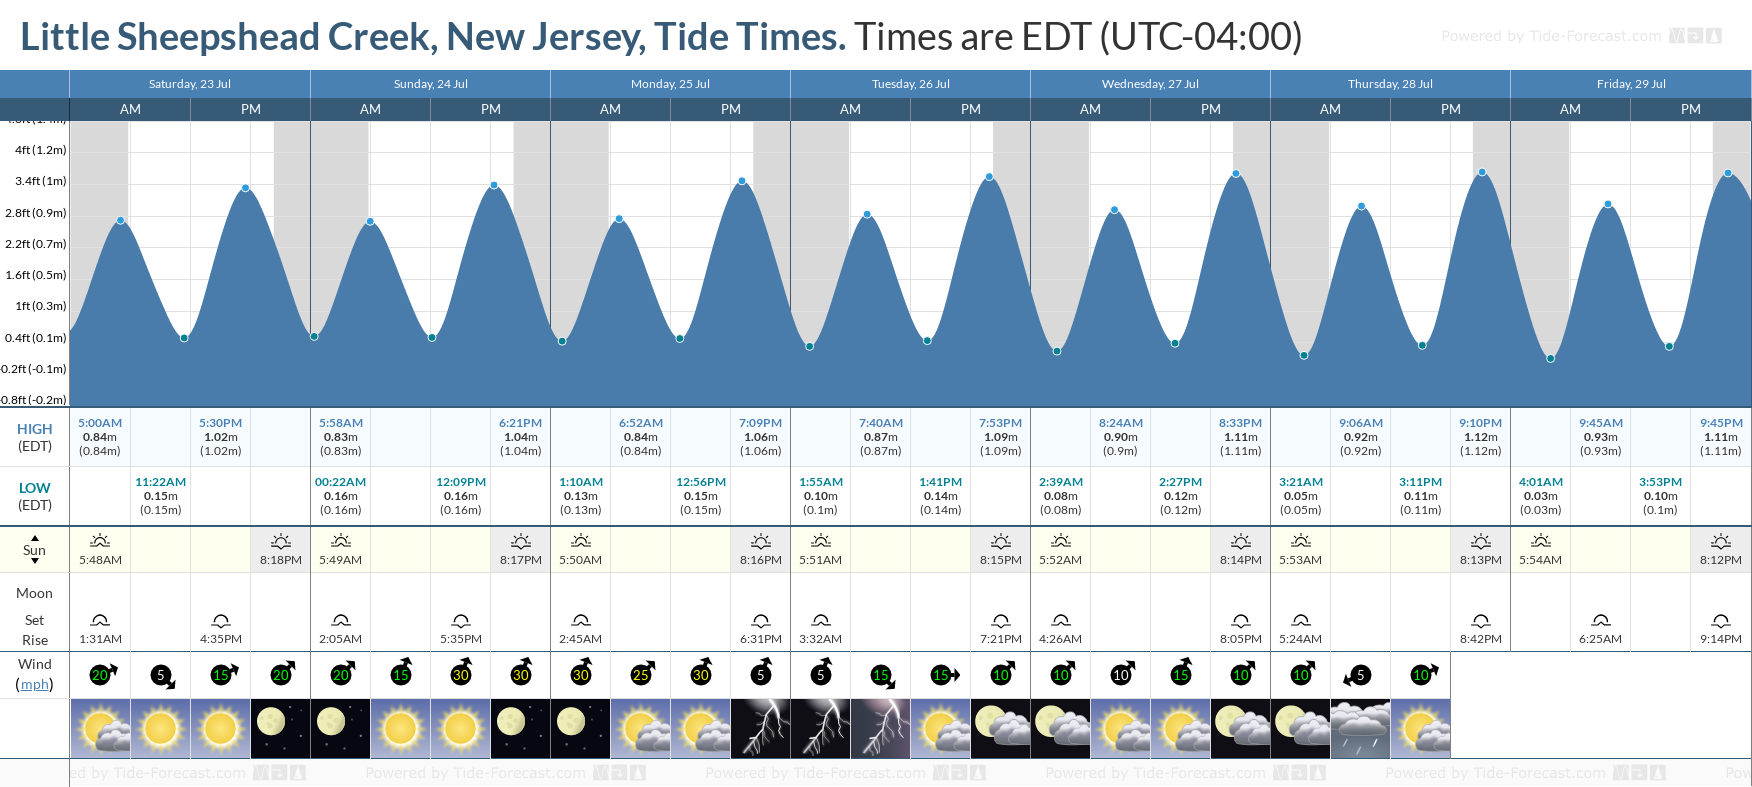 Little Sheepshead Creek, New Jersey Tide Chart including high and low tide tide times for the next 7 days